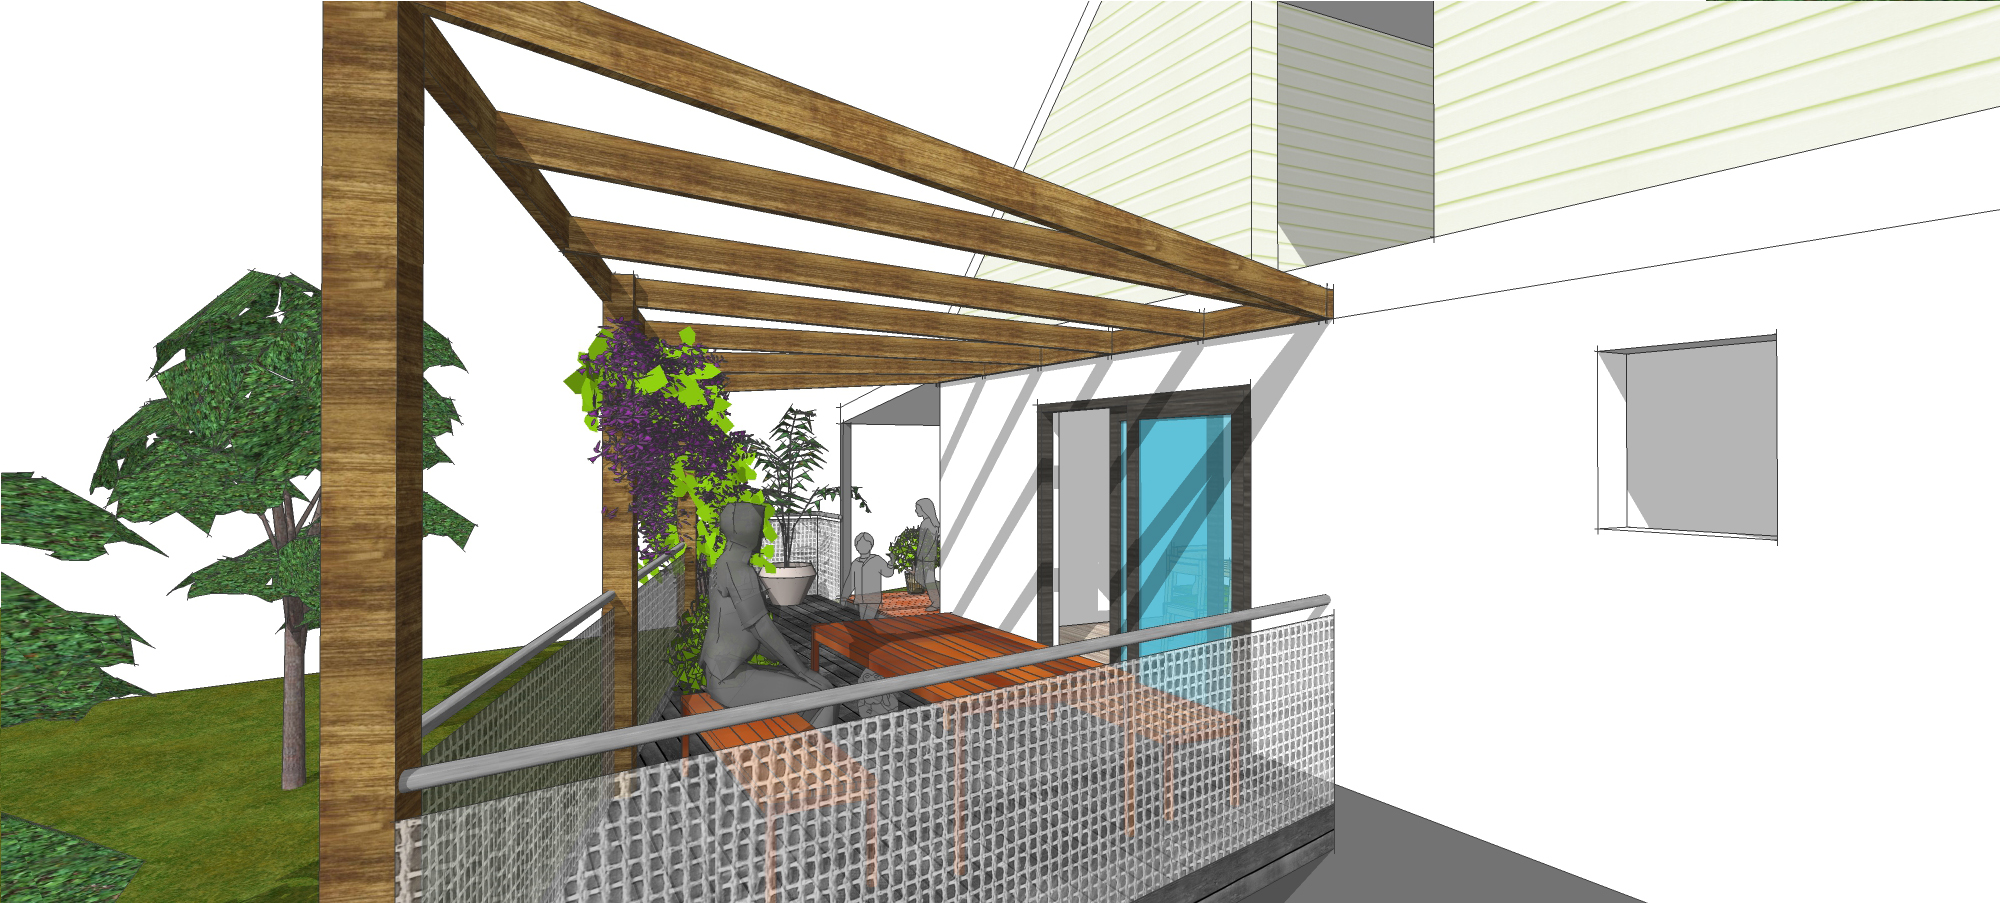 Sure Thing: Smart remodelling, efficient zoning, dramatic outdoor living deck.